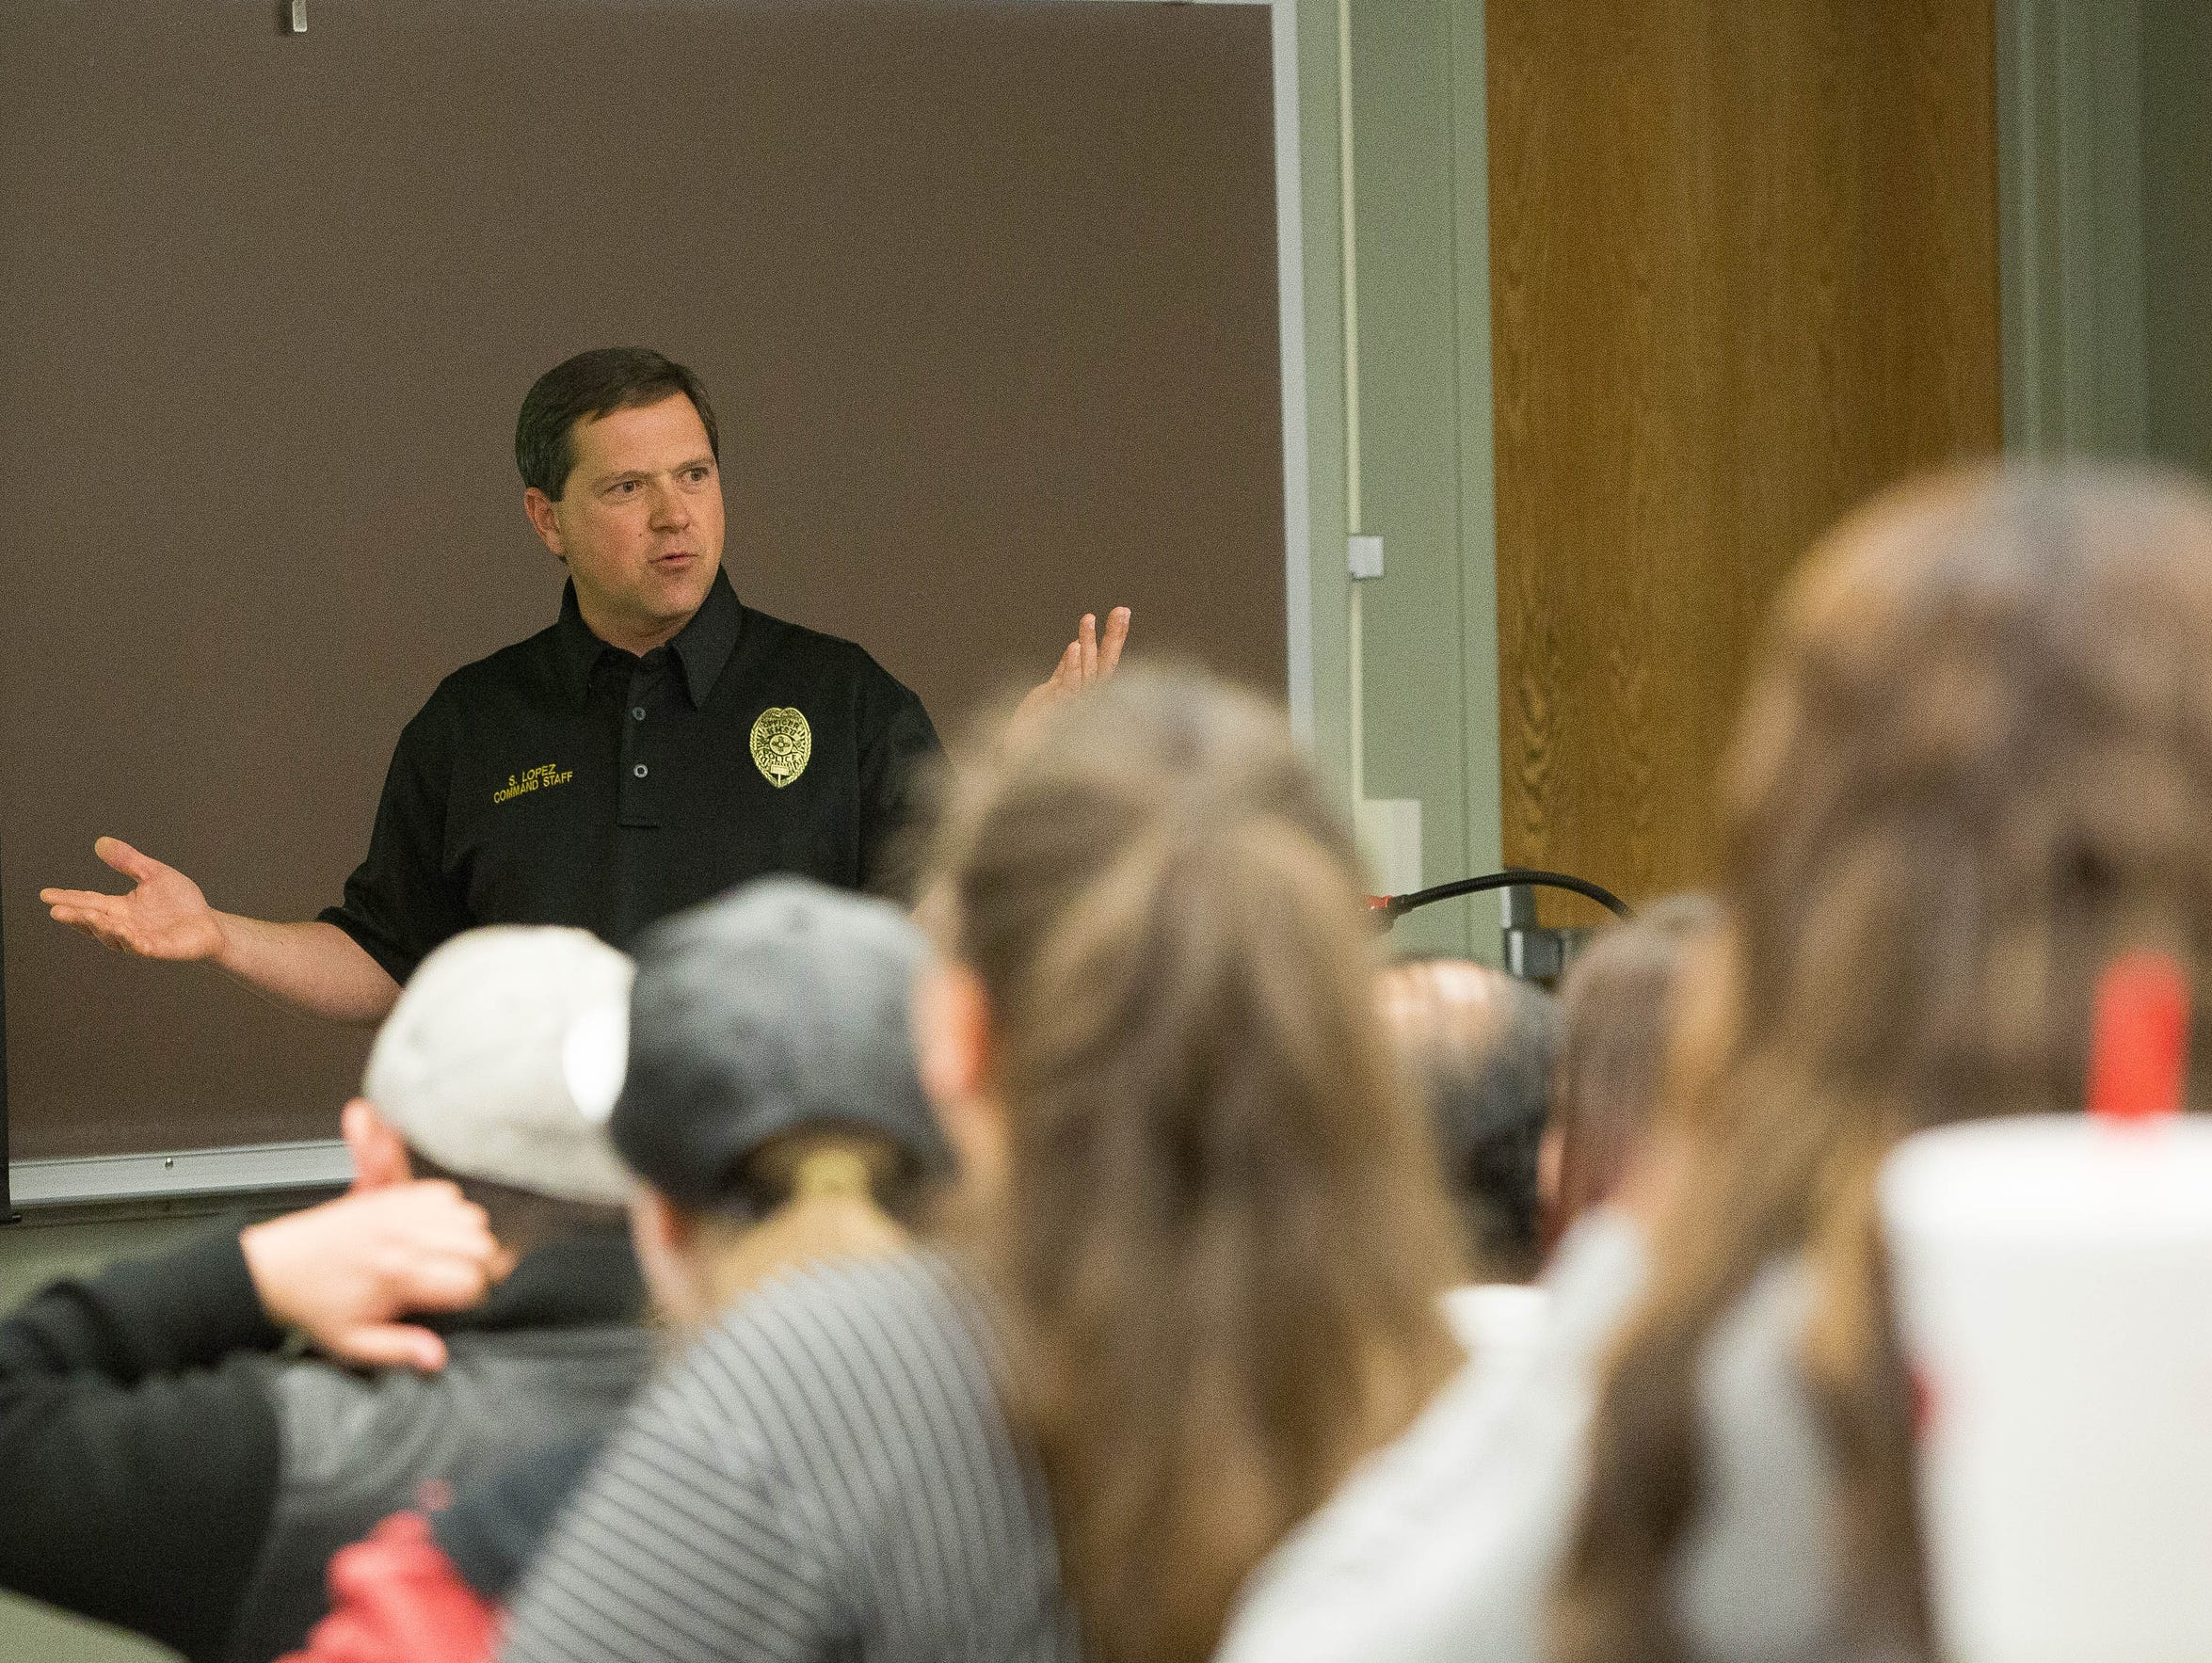 Stephen Lopez, New Mexico State University chief of police, talks about gun safety during a forum at NMSU, Thursday, March 1, 2018.